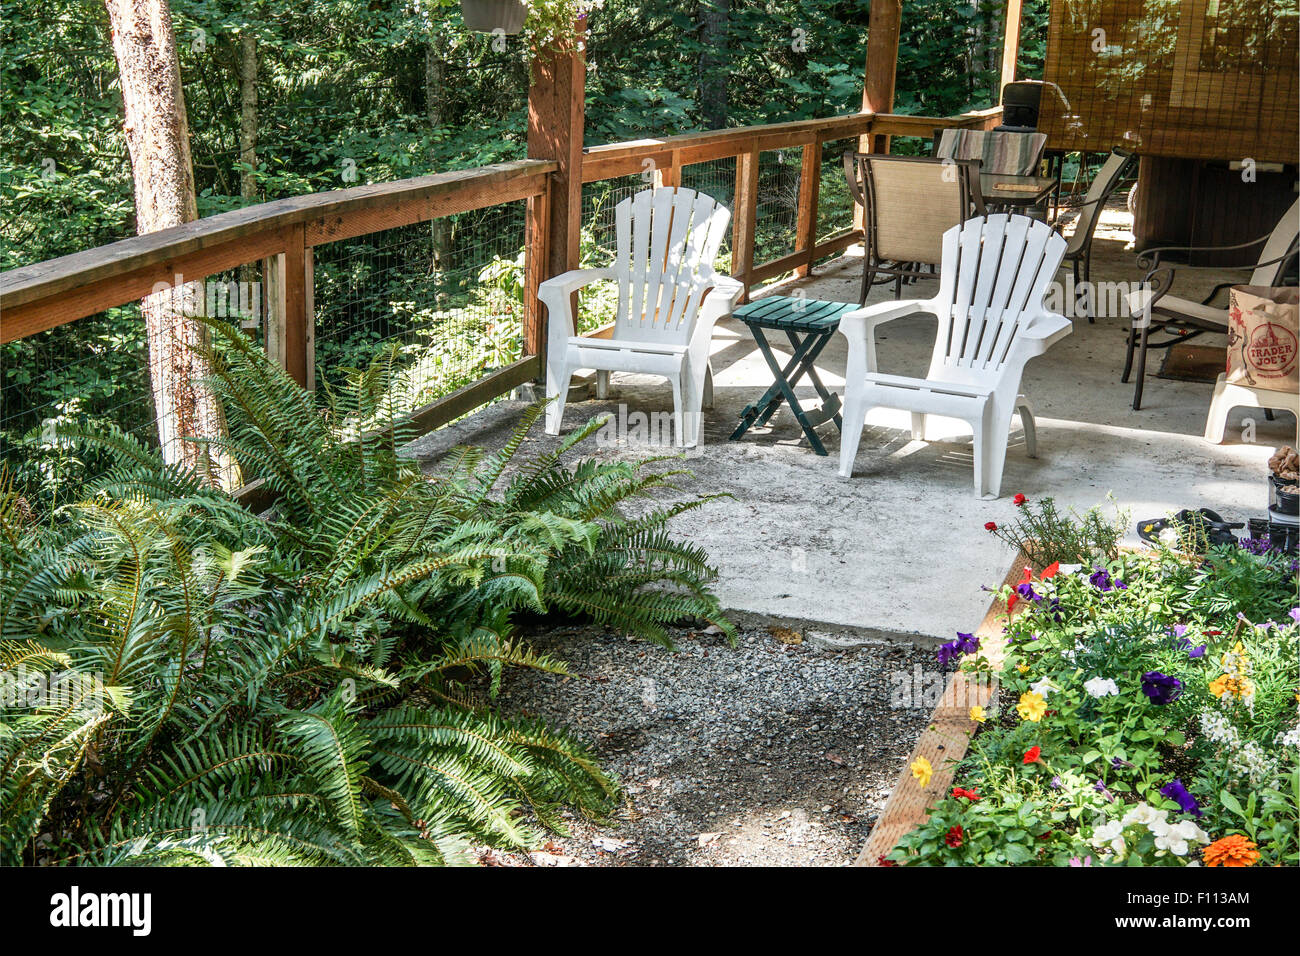 Casual Summer Scene Of The Good Life On Rustic Patio Surrounded By Trees  With Adirondack Chairs Lush Ferns U0026 Pretty Flower Bed